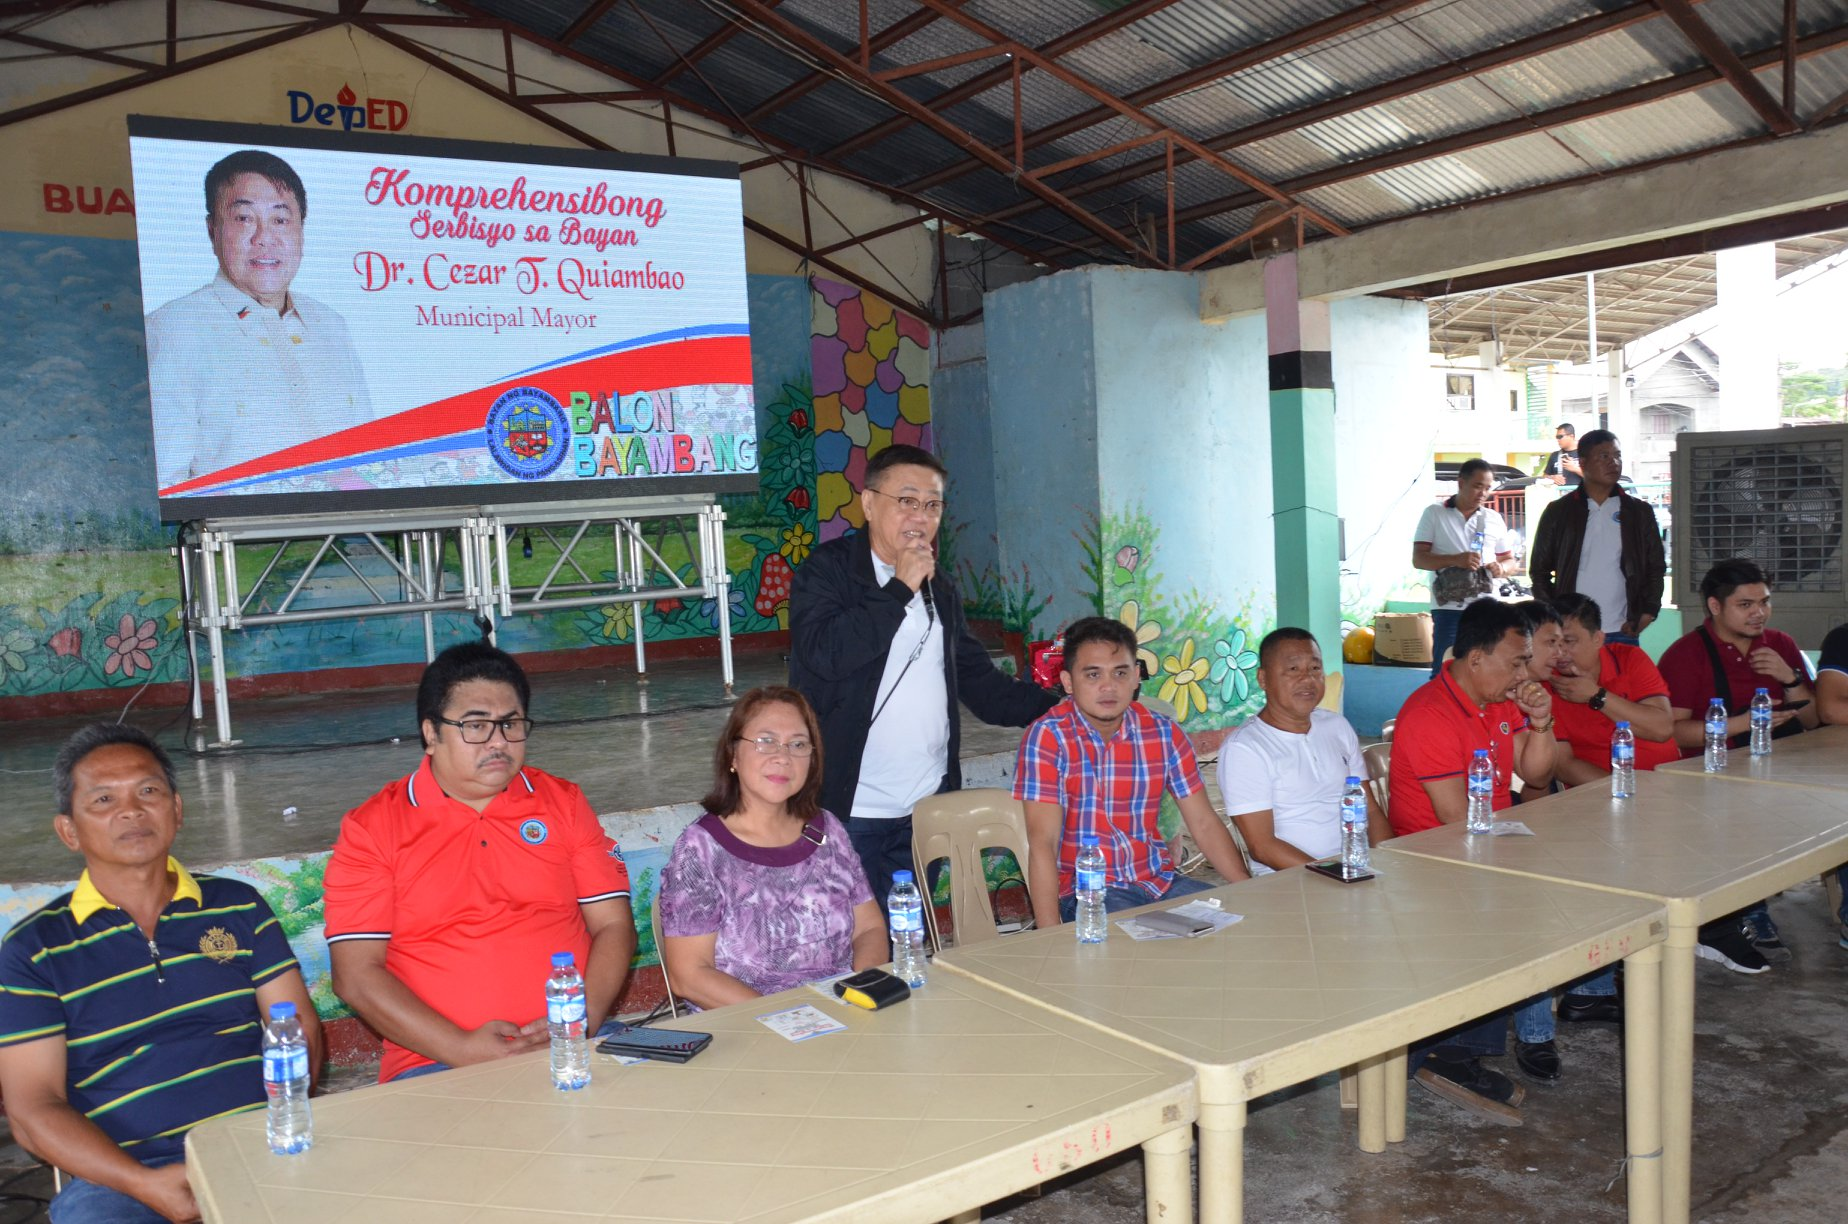 Komprehensibong Serbisyo sa Bayan Year 2 continues in Buayaen. Here's our report….